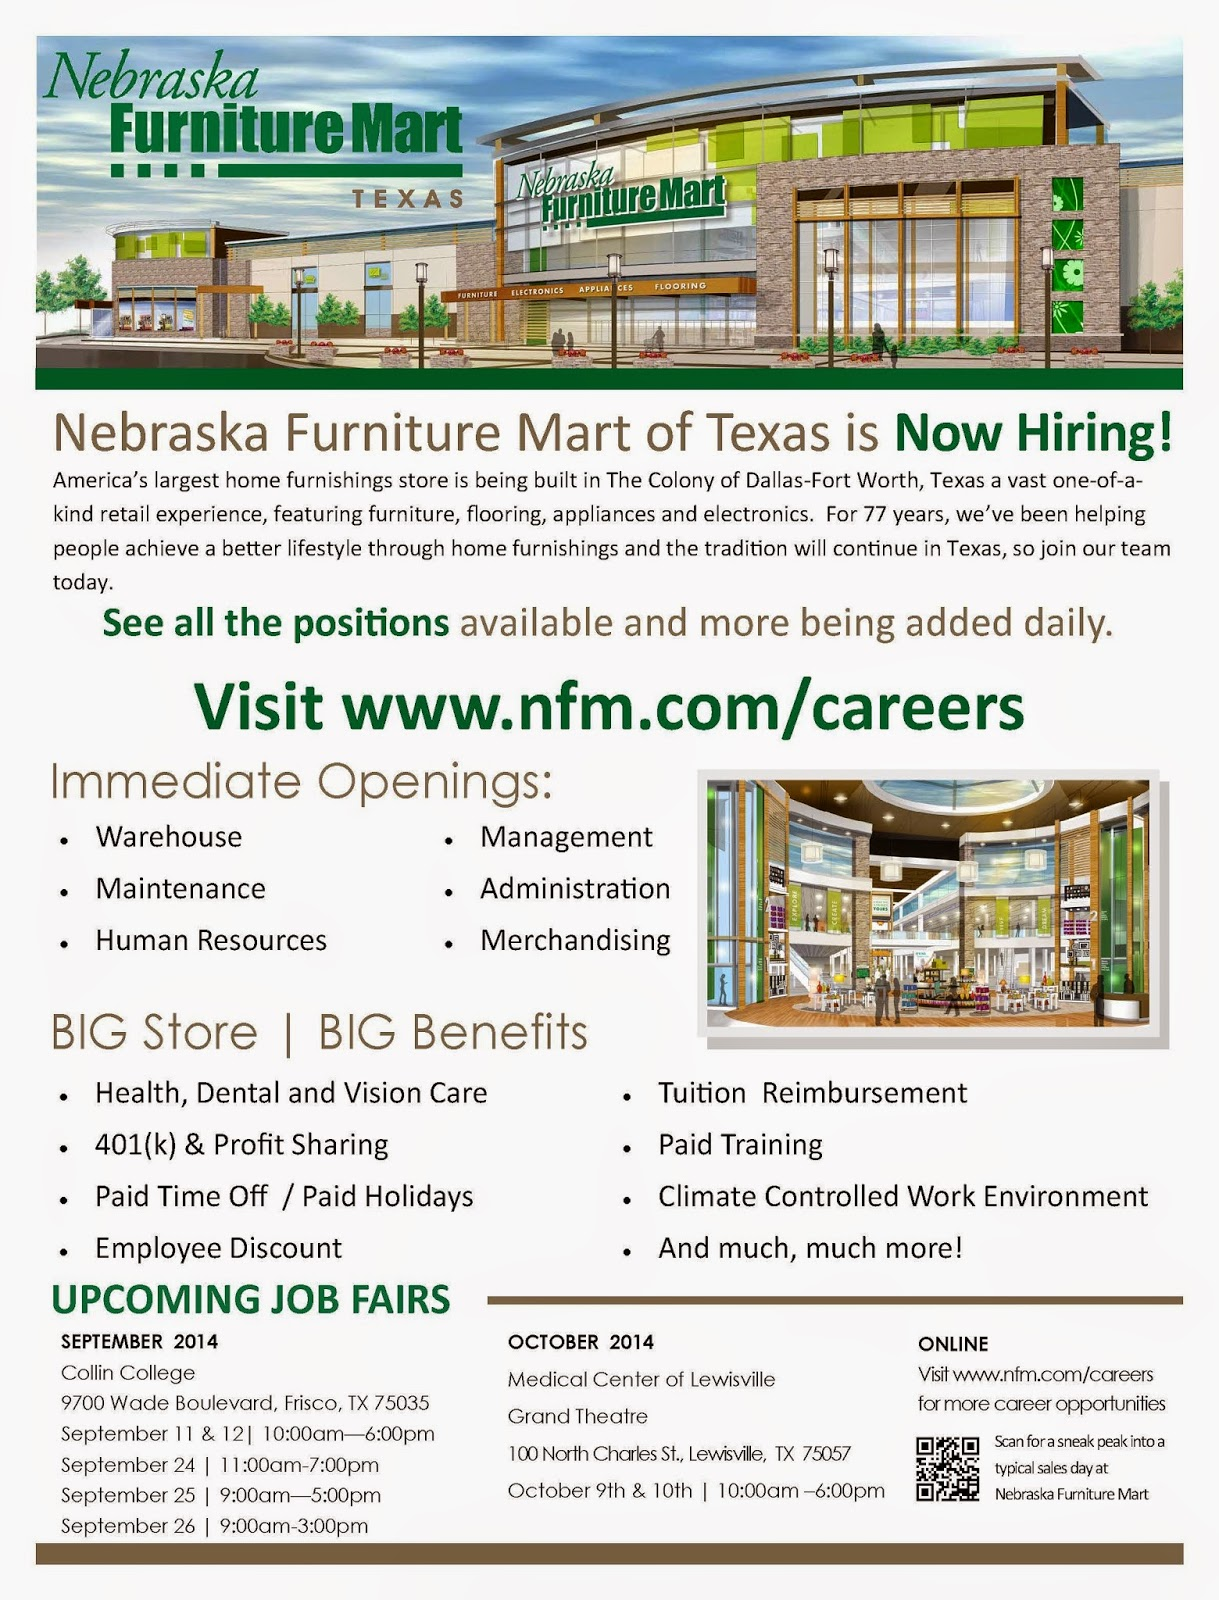 Nebraska furniture mart coupon code